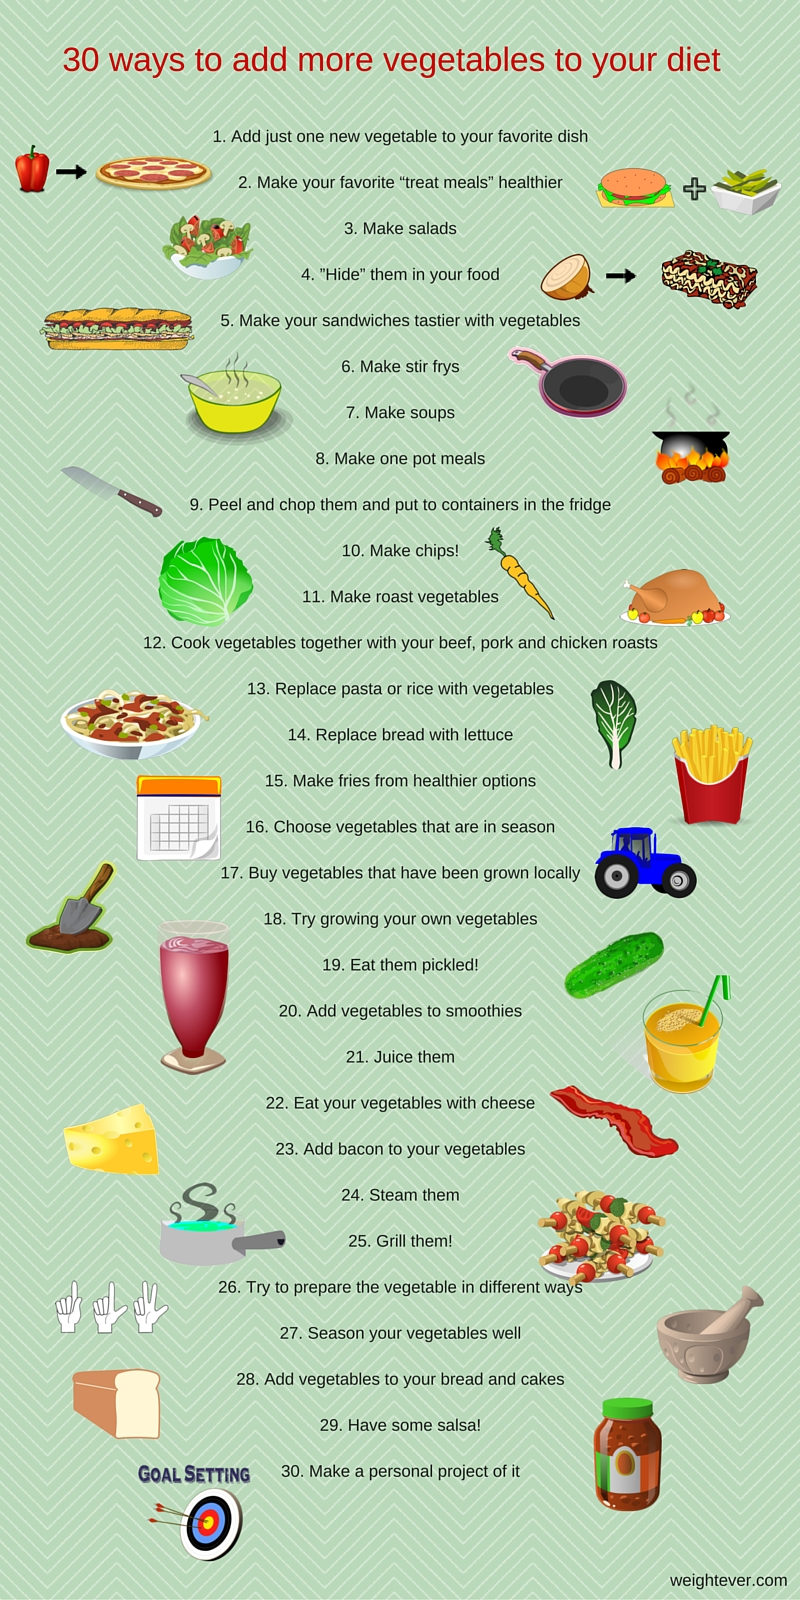 30 ways to add more vegetables to your diet